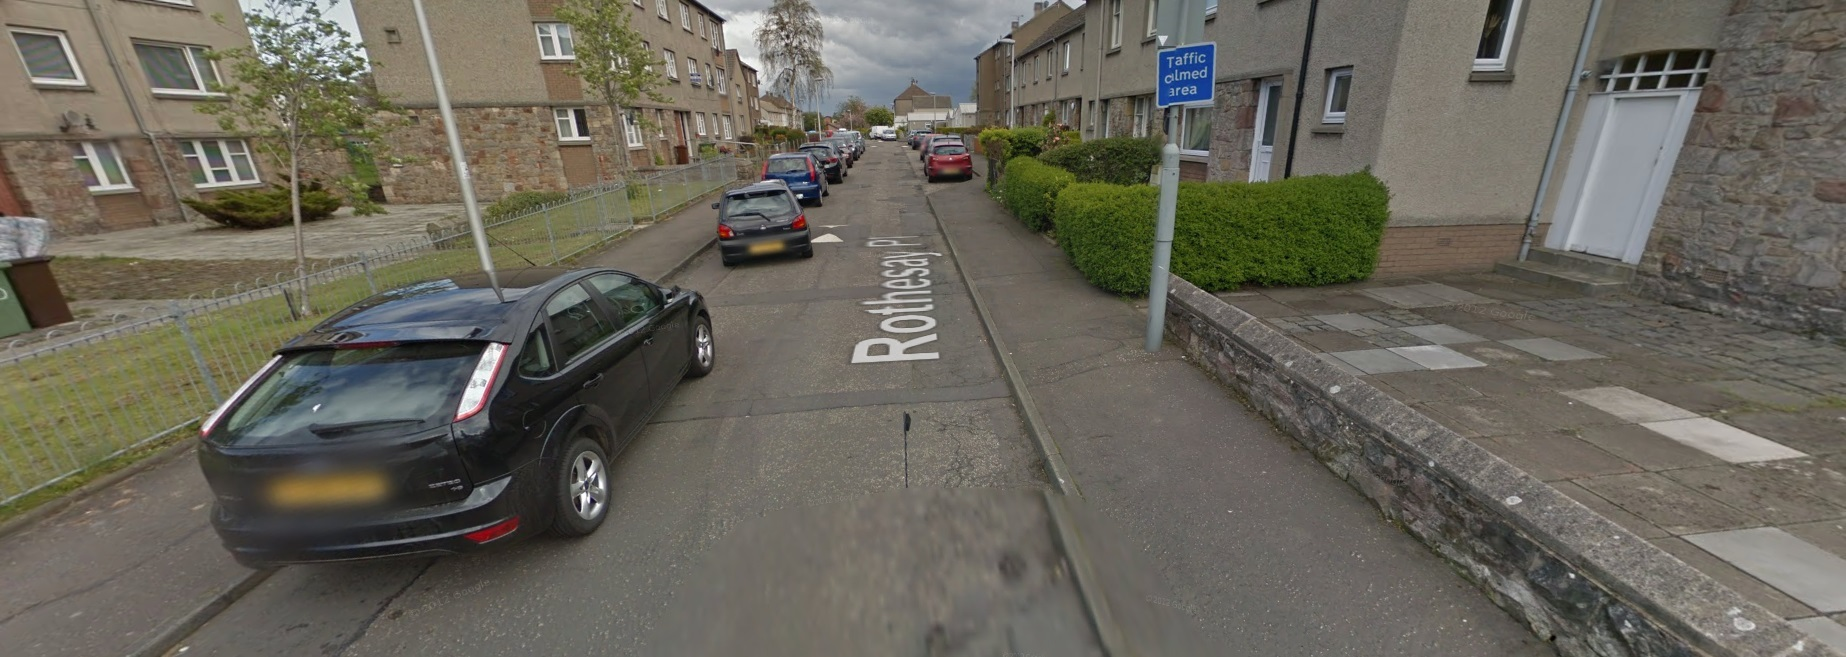 Medication was taken from an address on Rothesay Place, in Musselburgh